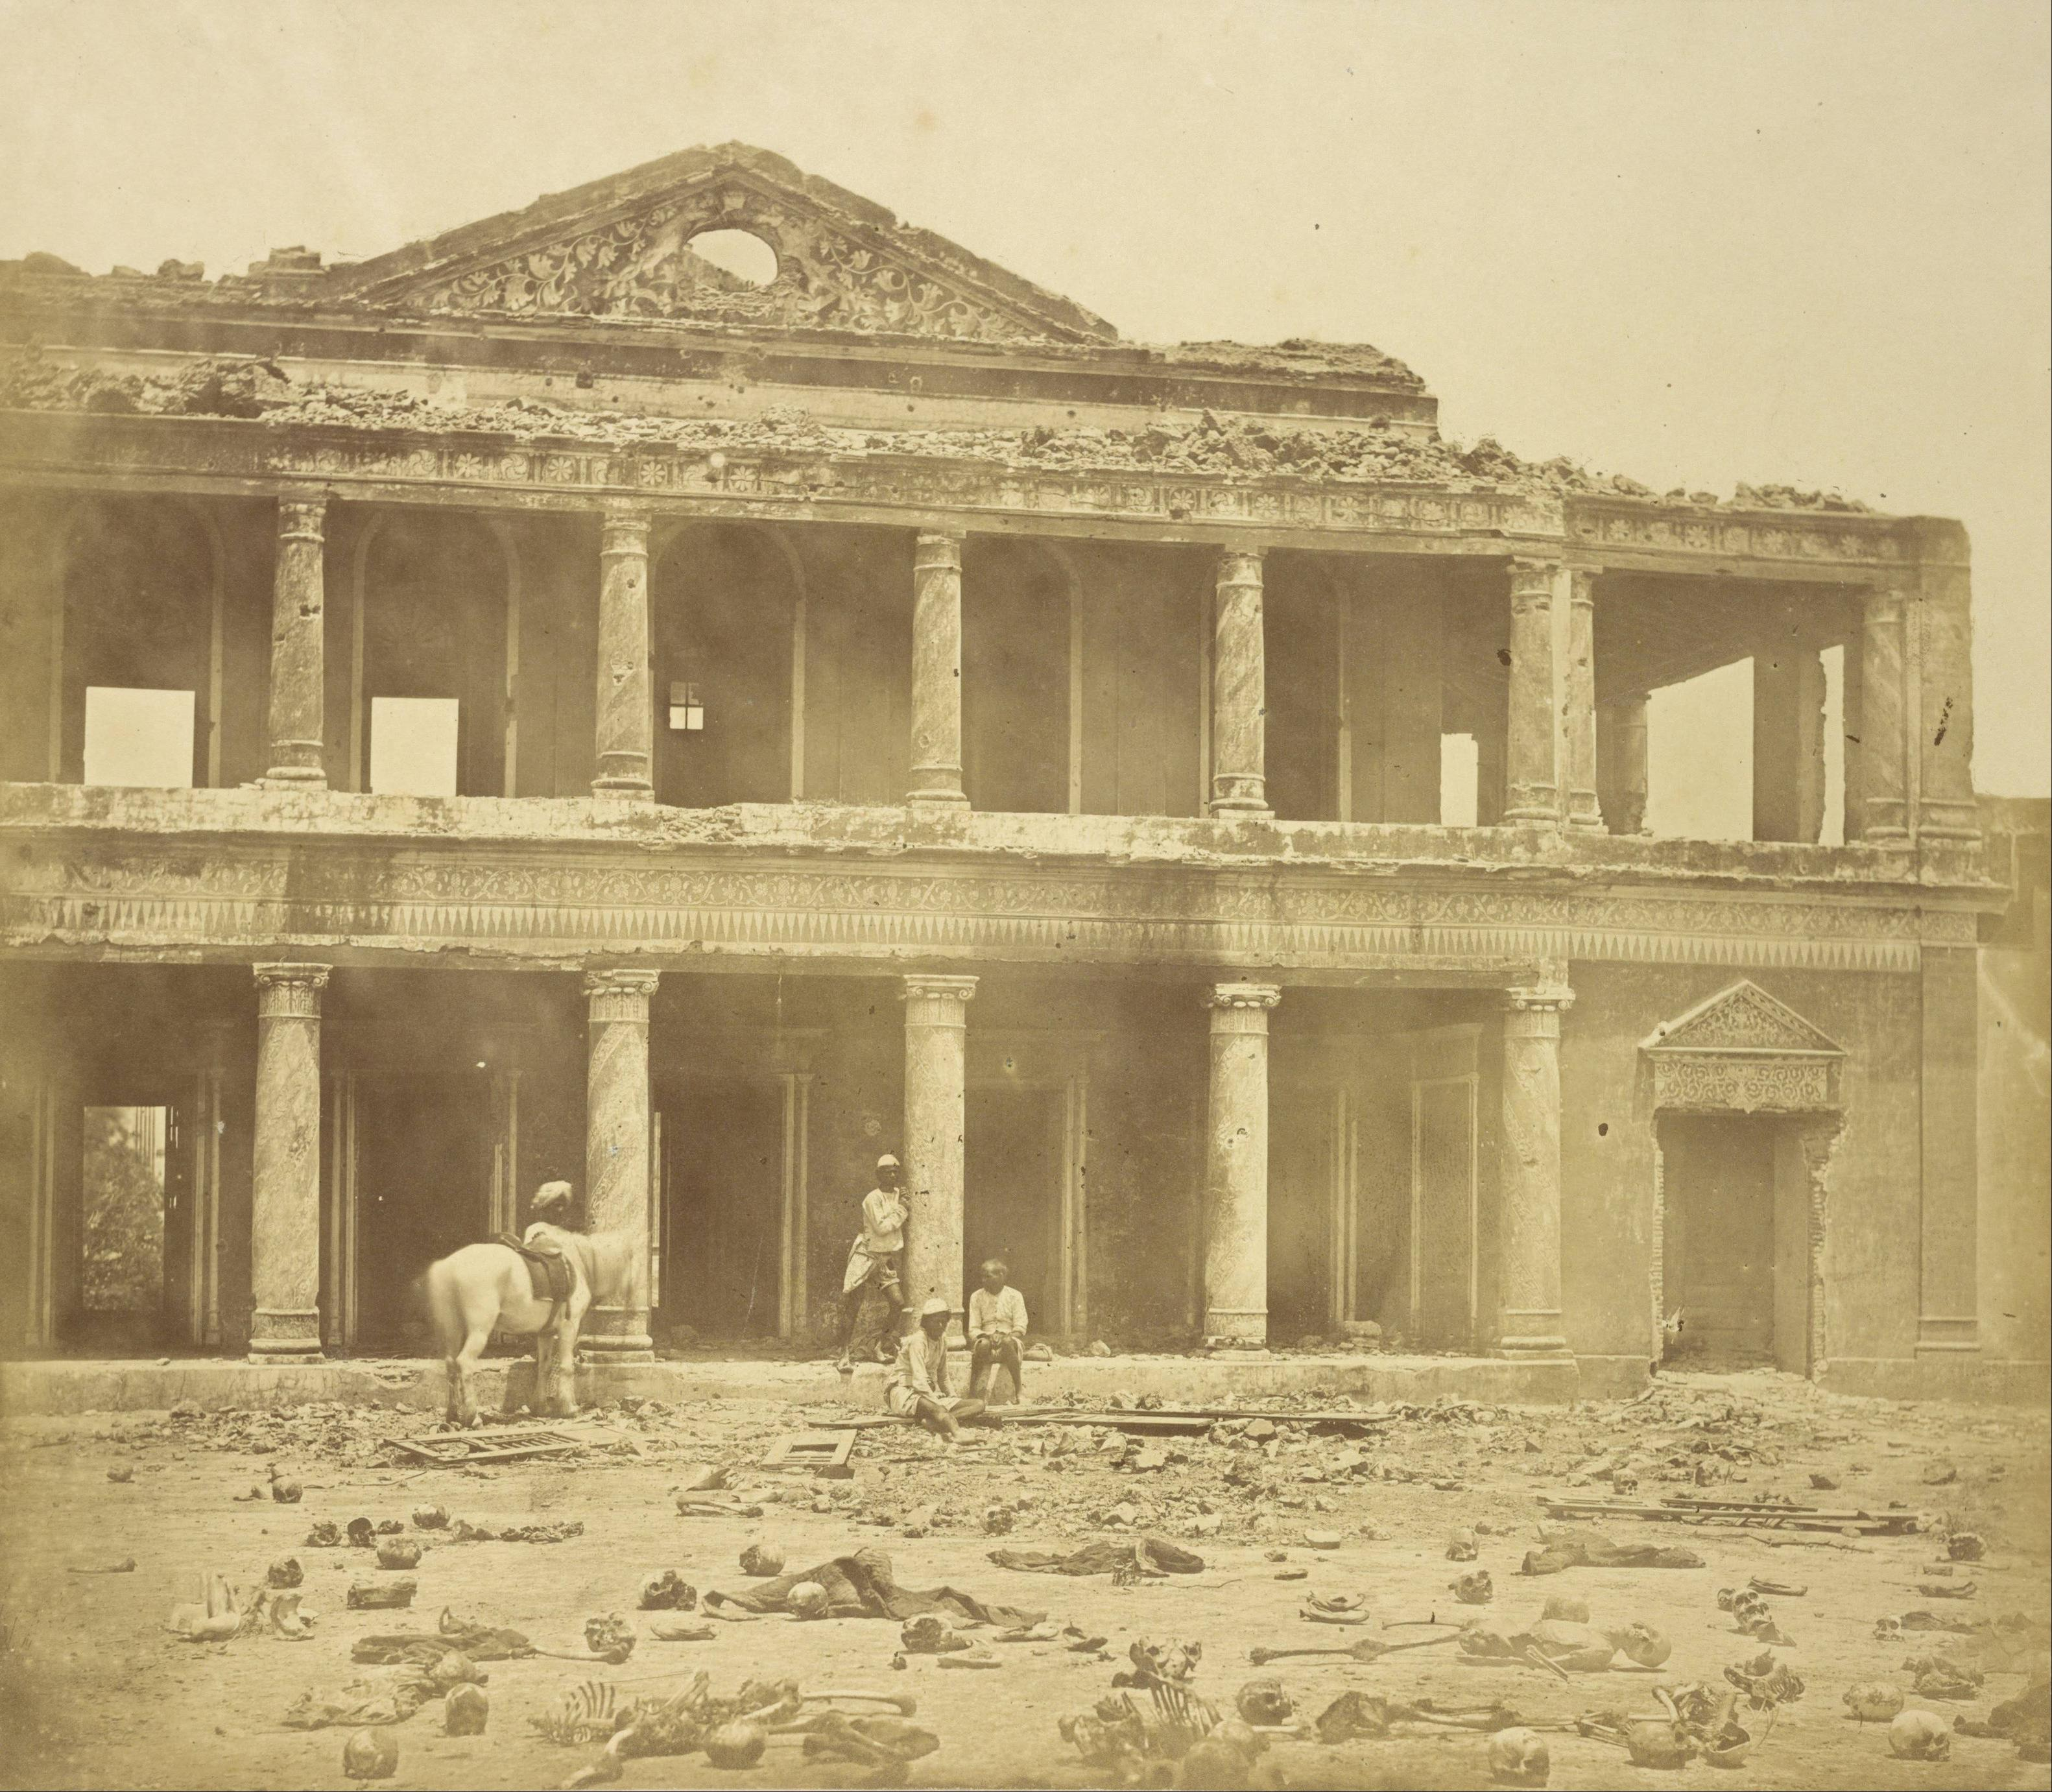 60 Rare Photographs That Will Take You Back In The Rich History Of India